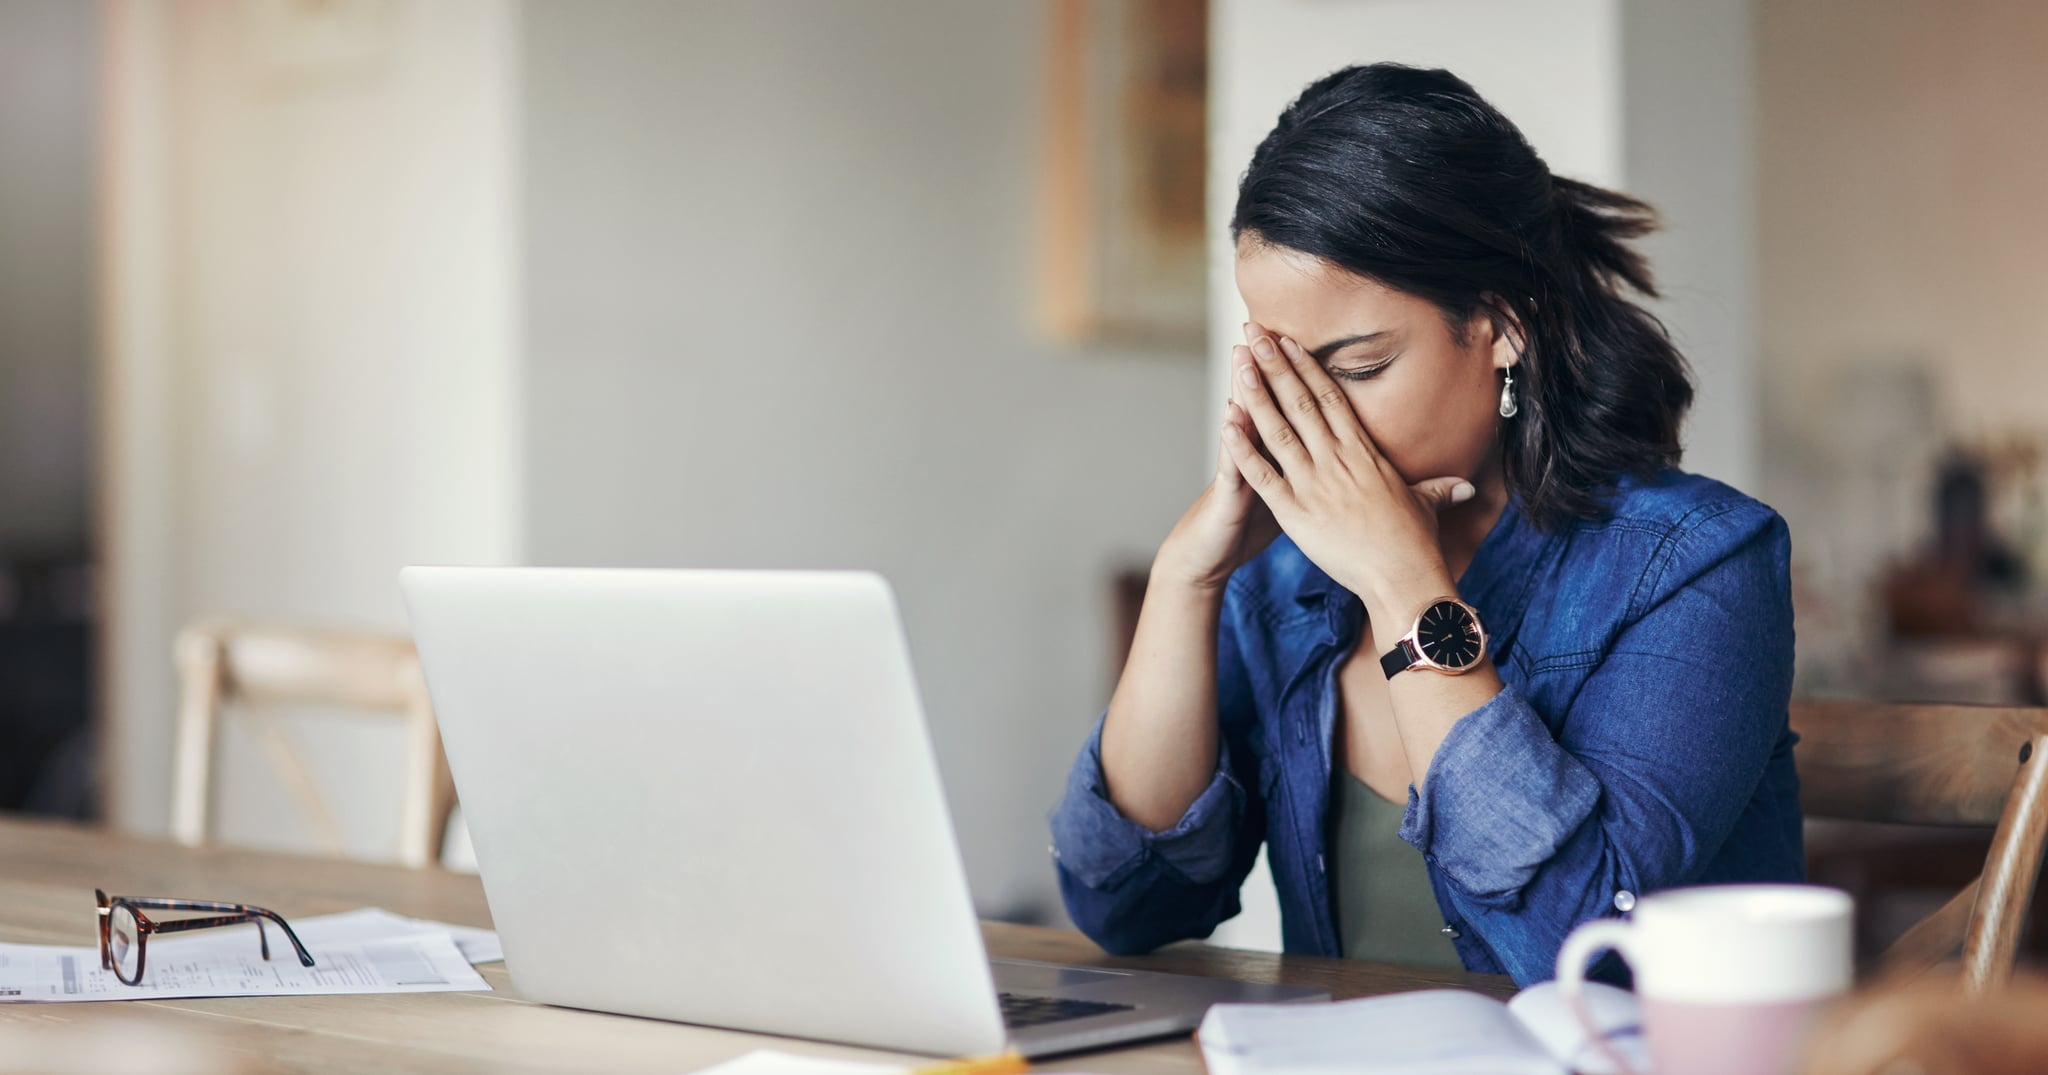 Shot of a young woman looking stressed while using a laptop to work from home